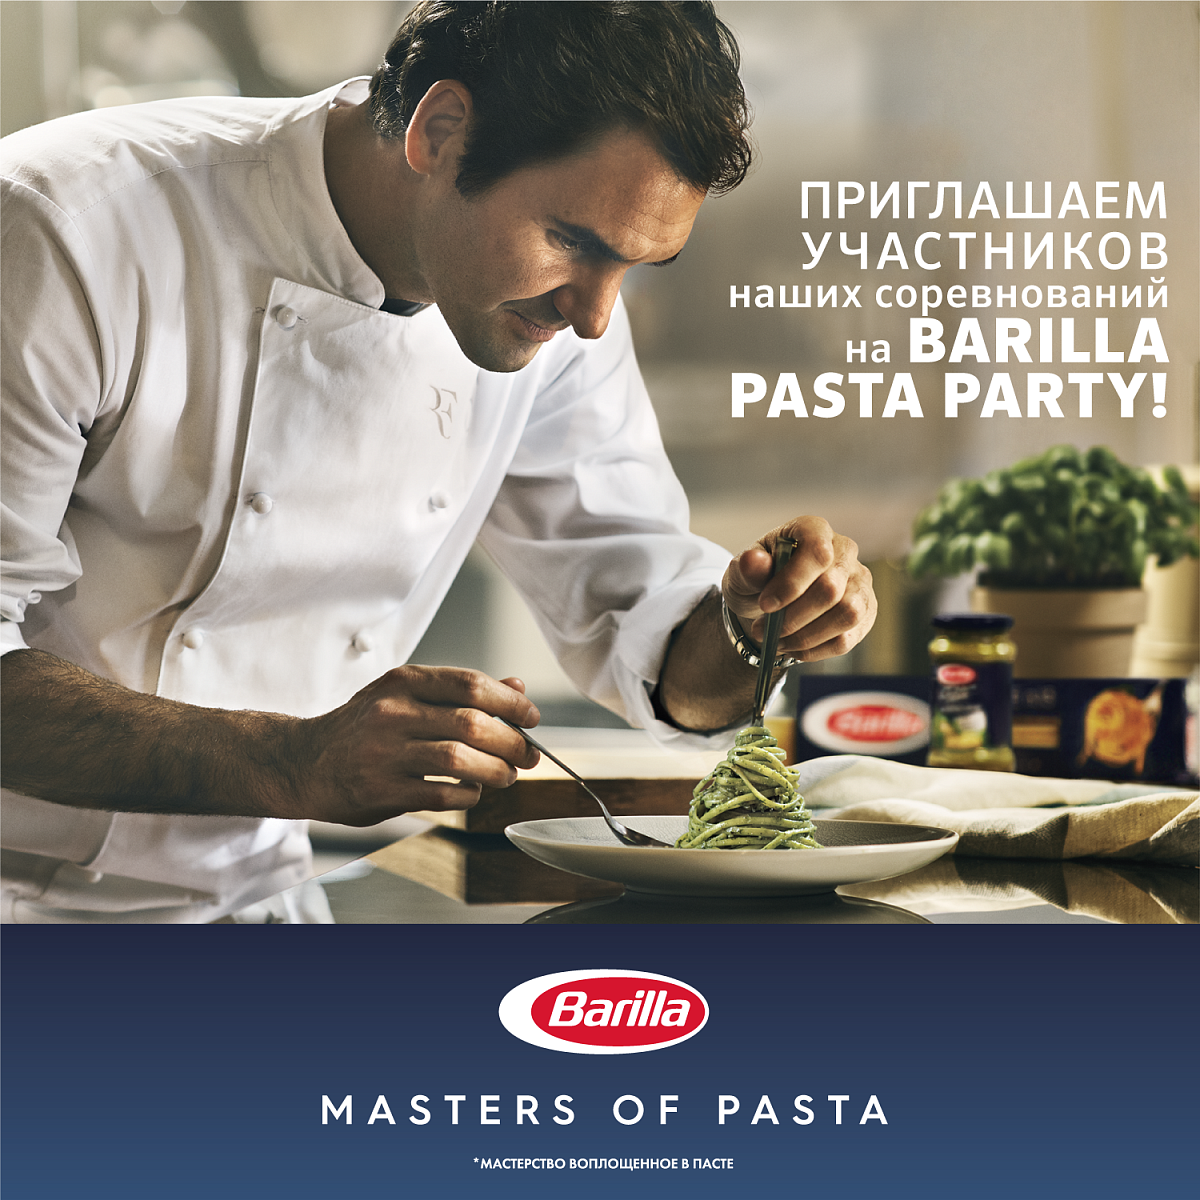 Barilla will make delicious Pasta Party for triathletes